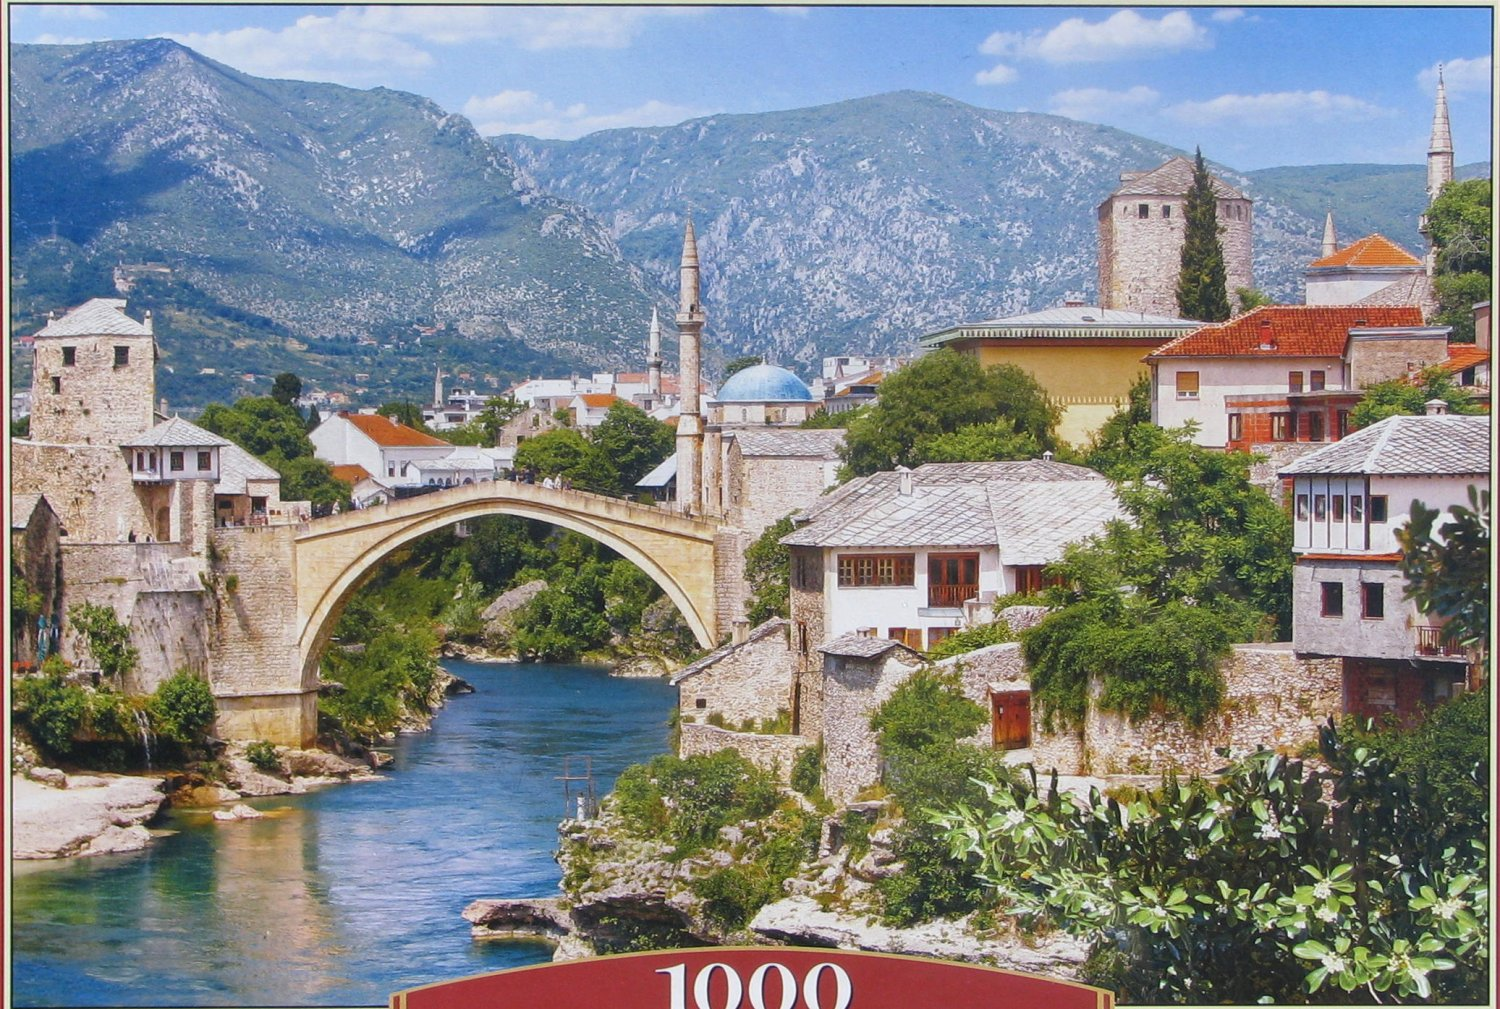 Castorland MOSTAR BOSNIA AND HERZEGOVINA 1000 pc Jigsaw Puzzle